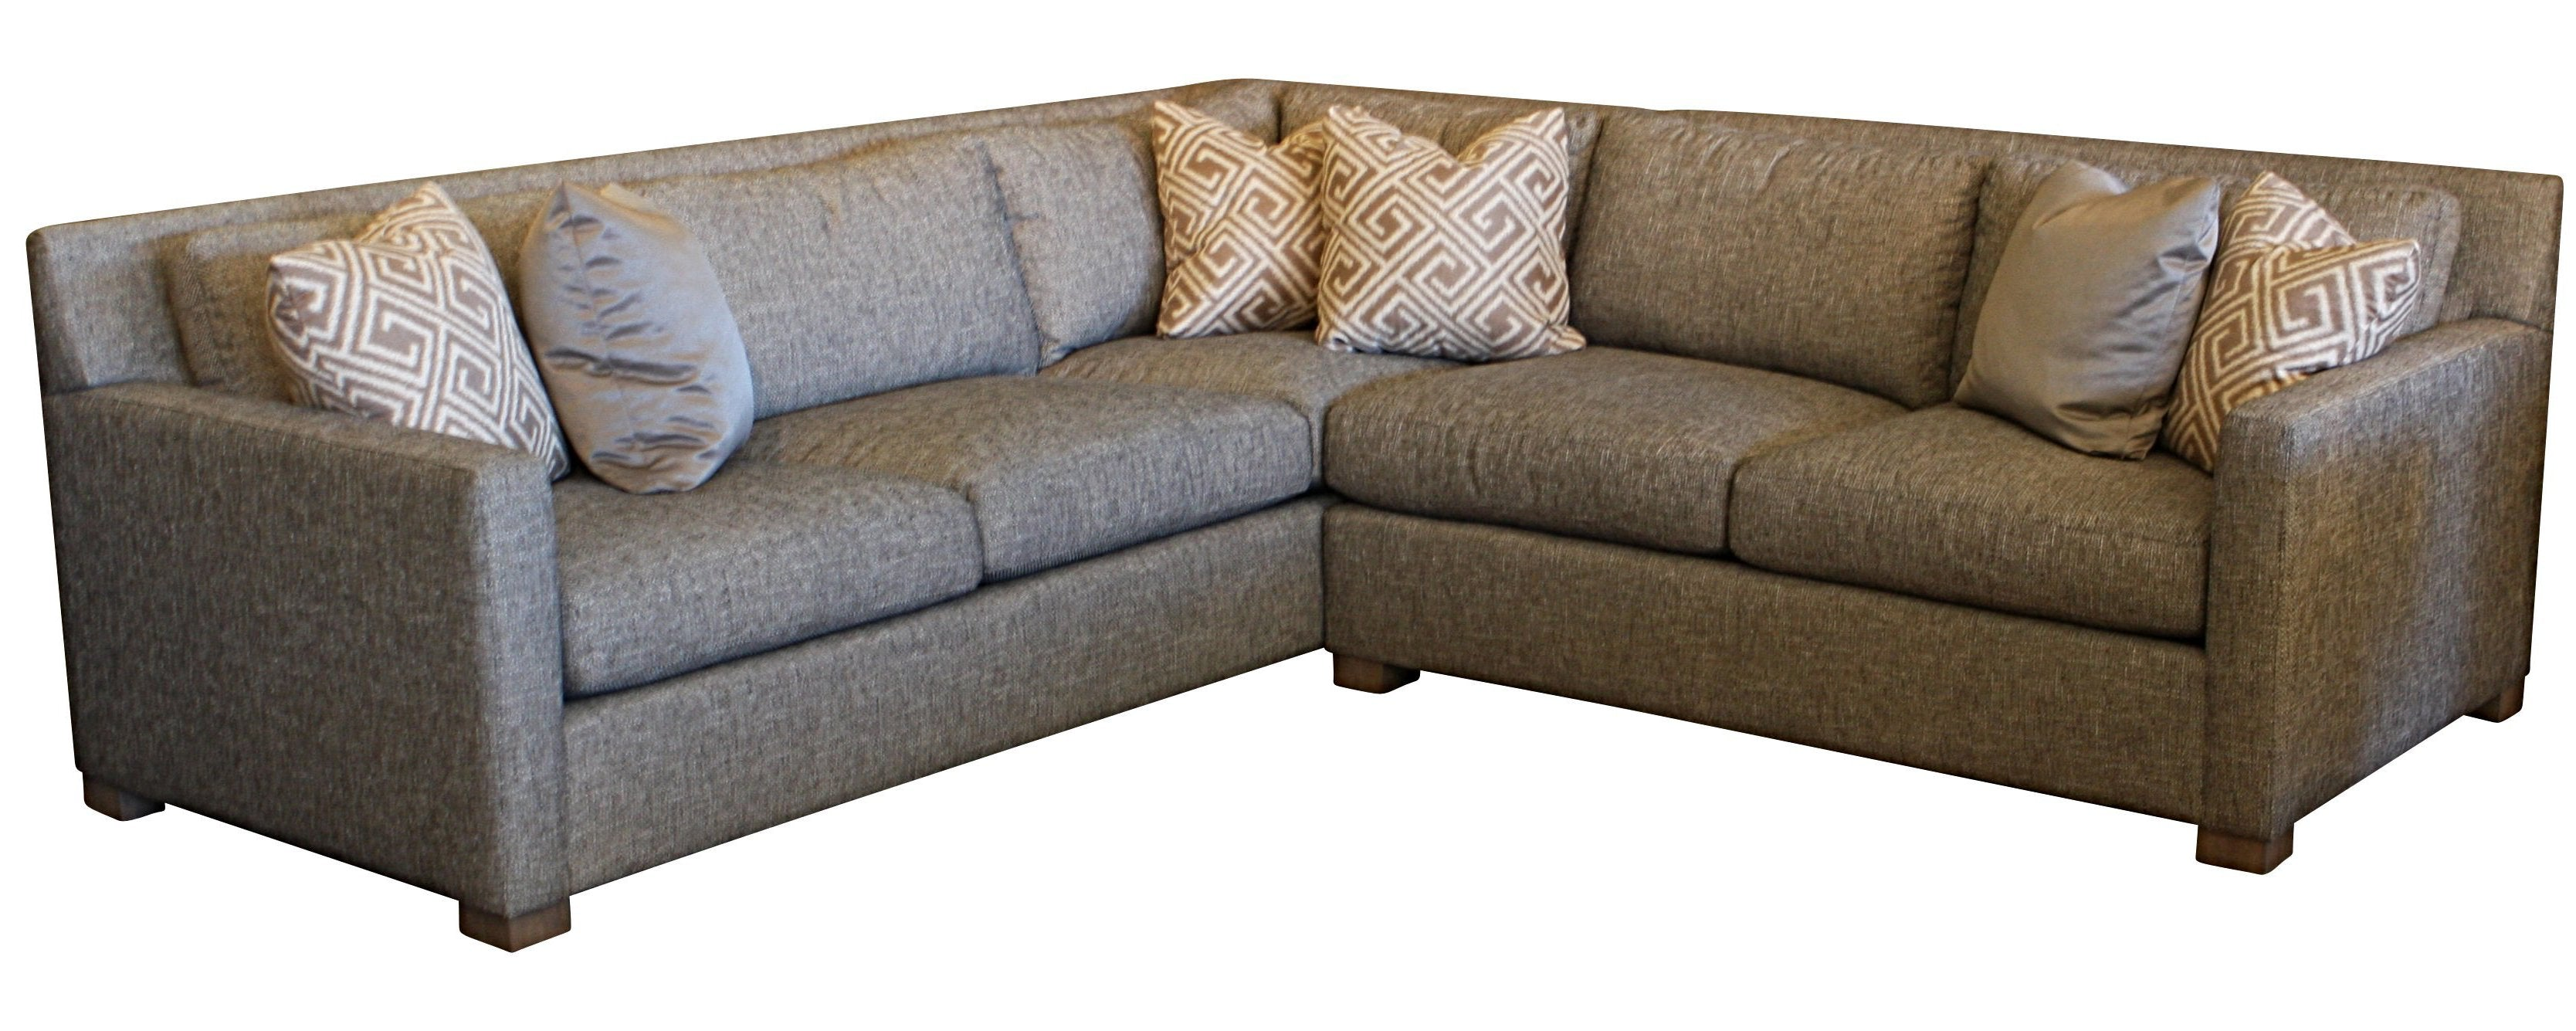 Seattle Custom Sectional Sofa – Mortise & Tenon